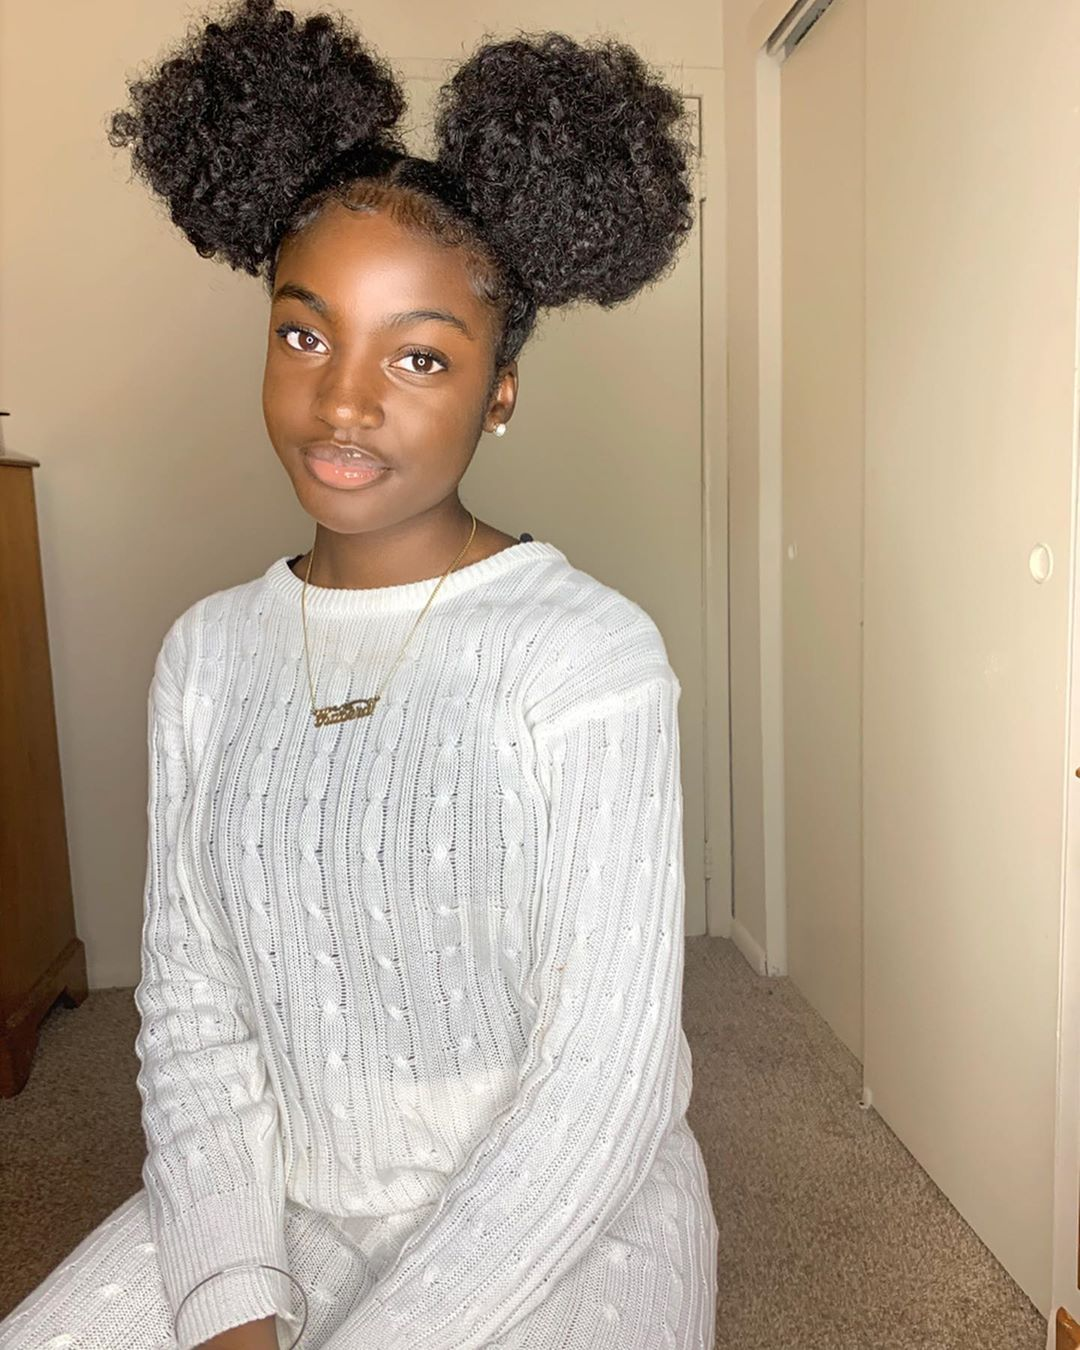 Kaberaaa On Instagram 2 Buns No Mickey Outfit Thebaddiefactory Lipglo Natural Hair Styles Easy Protective Hairstyles For Natural Hair Ball Hairstyles